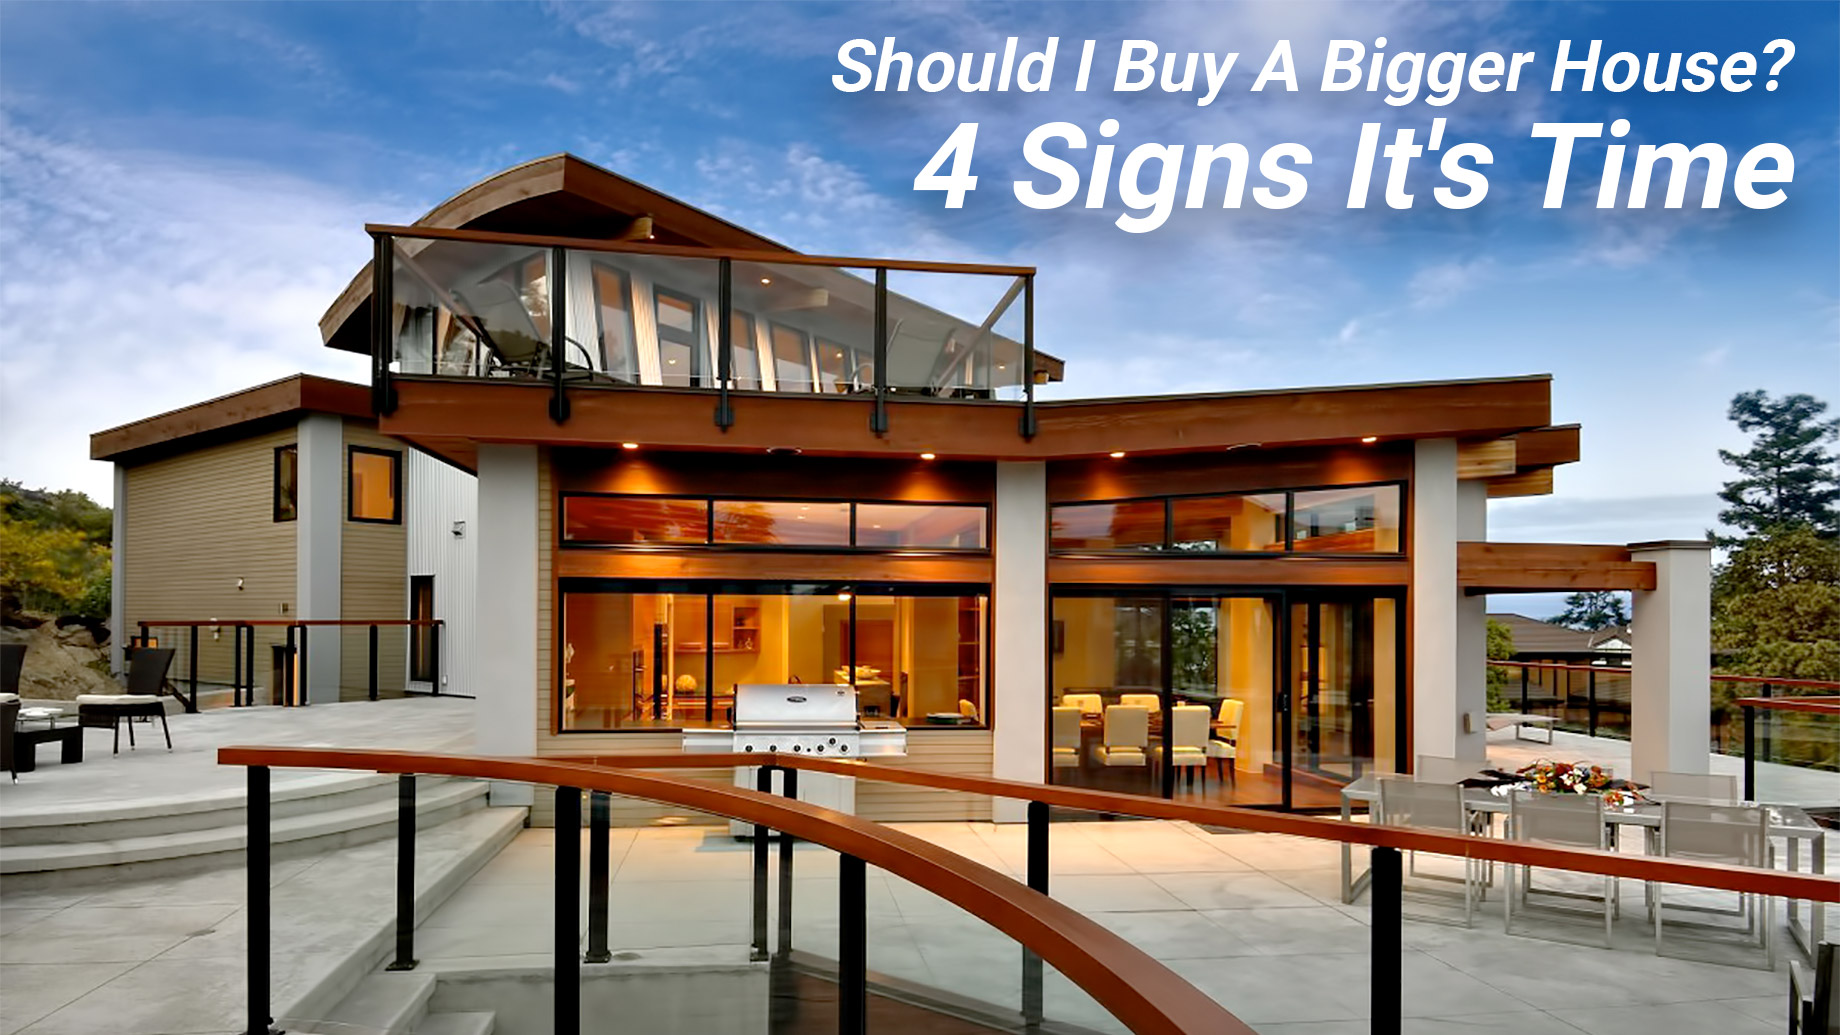 Should I Buy A Bigger House? 4 Signs It's Time